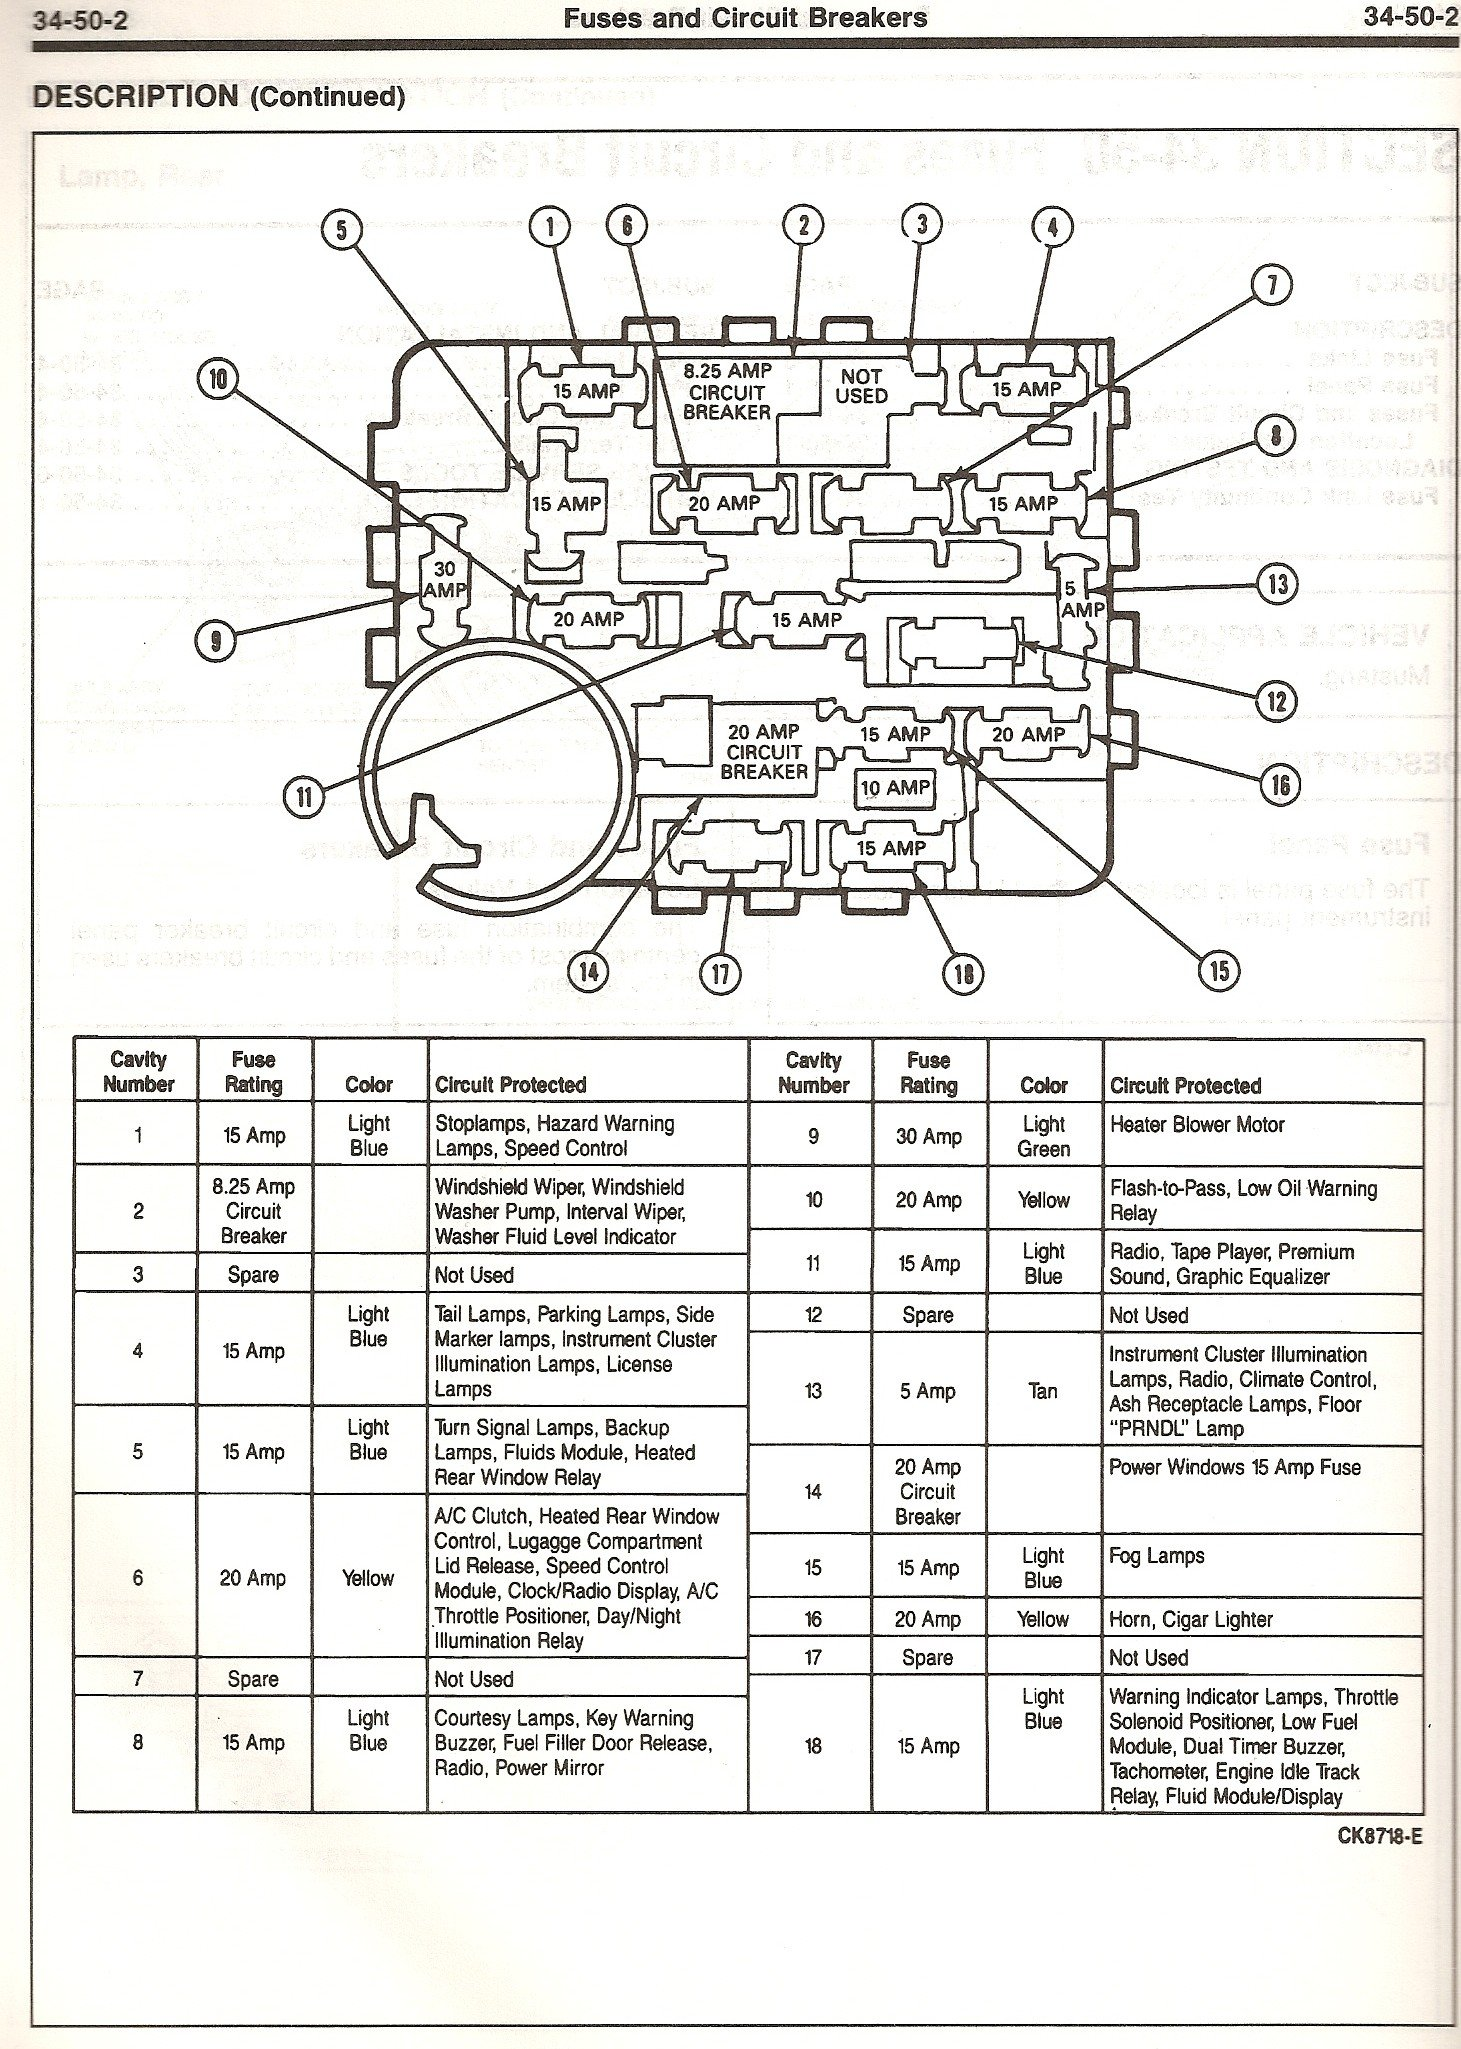 2003 Ford Taurus 3 0 Fuse Box Diagram Trusted Wiring For 2004 Gmc Envoy Schematics Starting Know About 1996